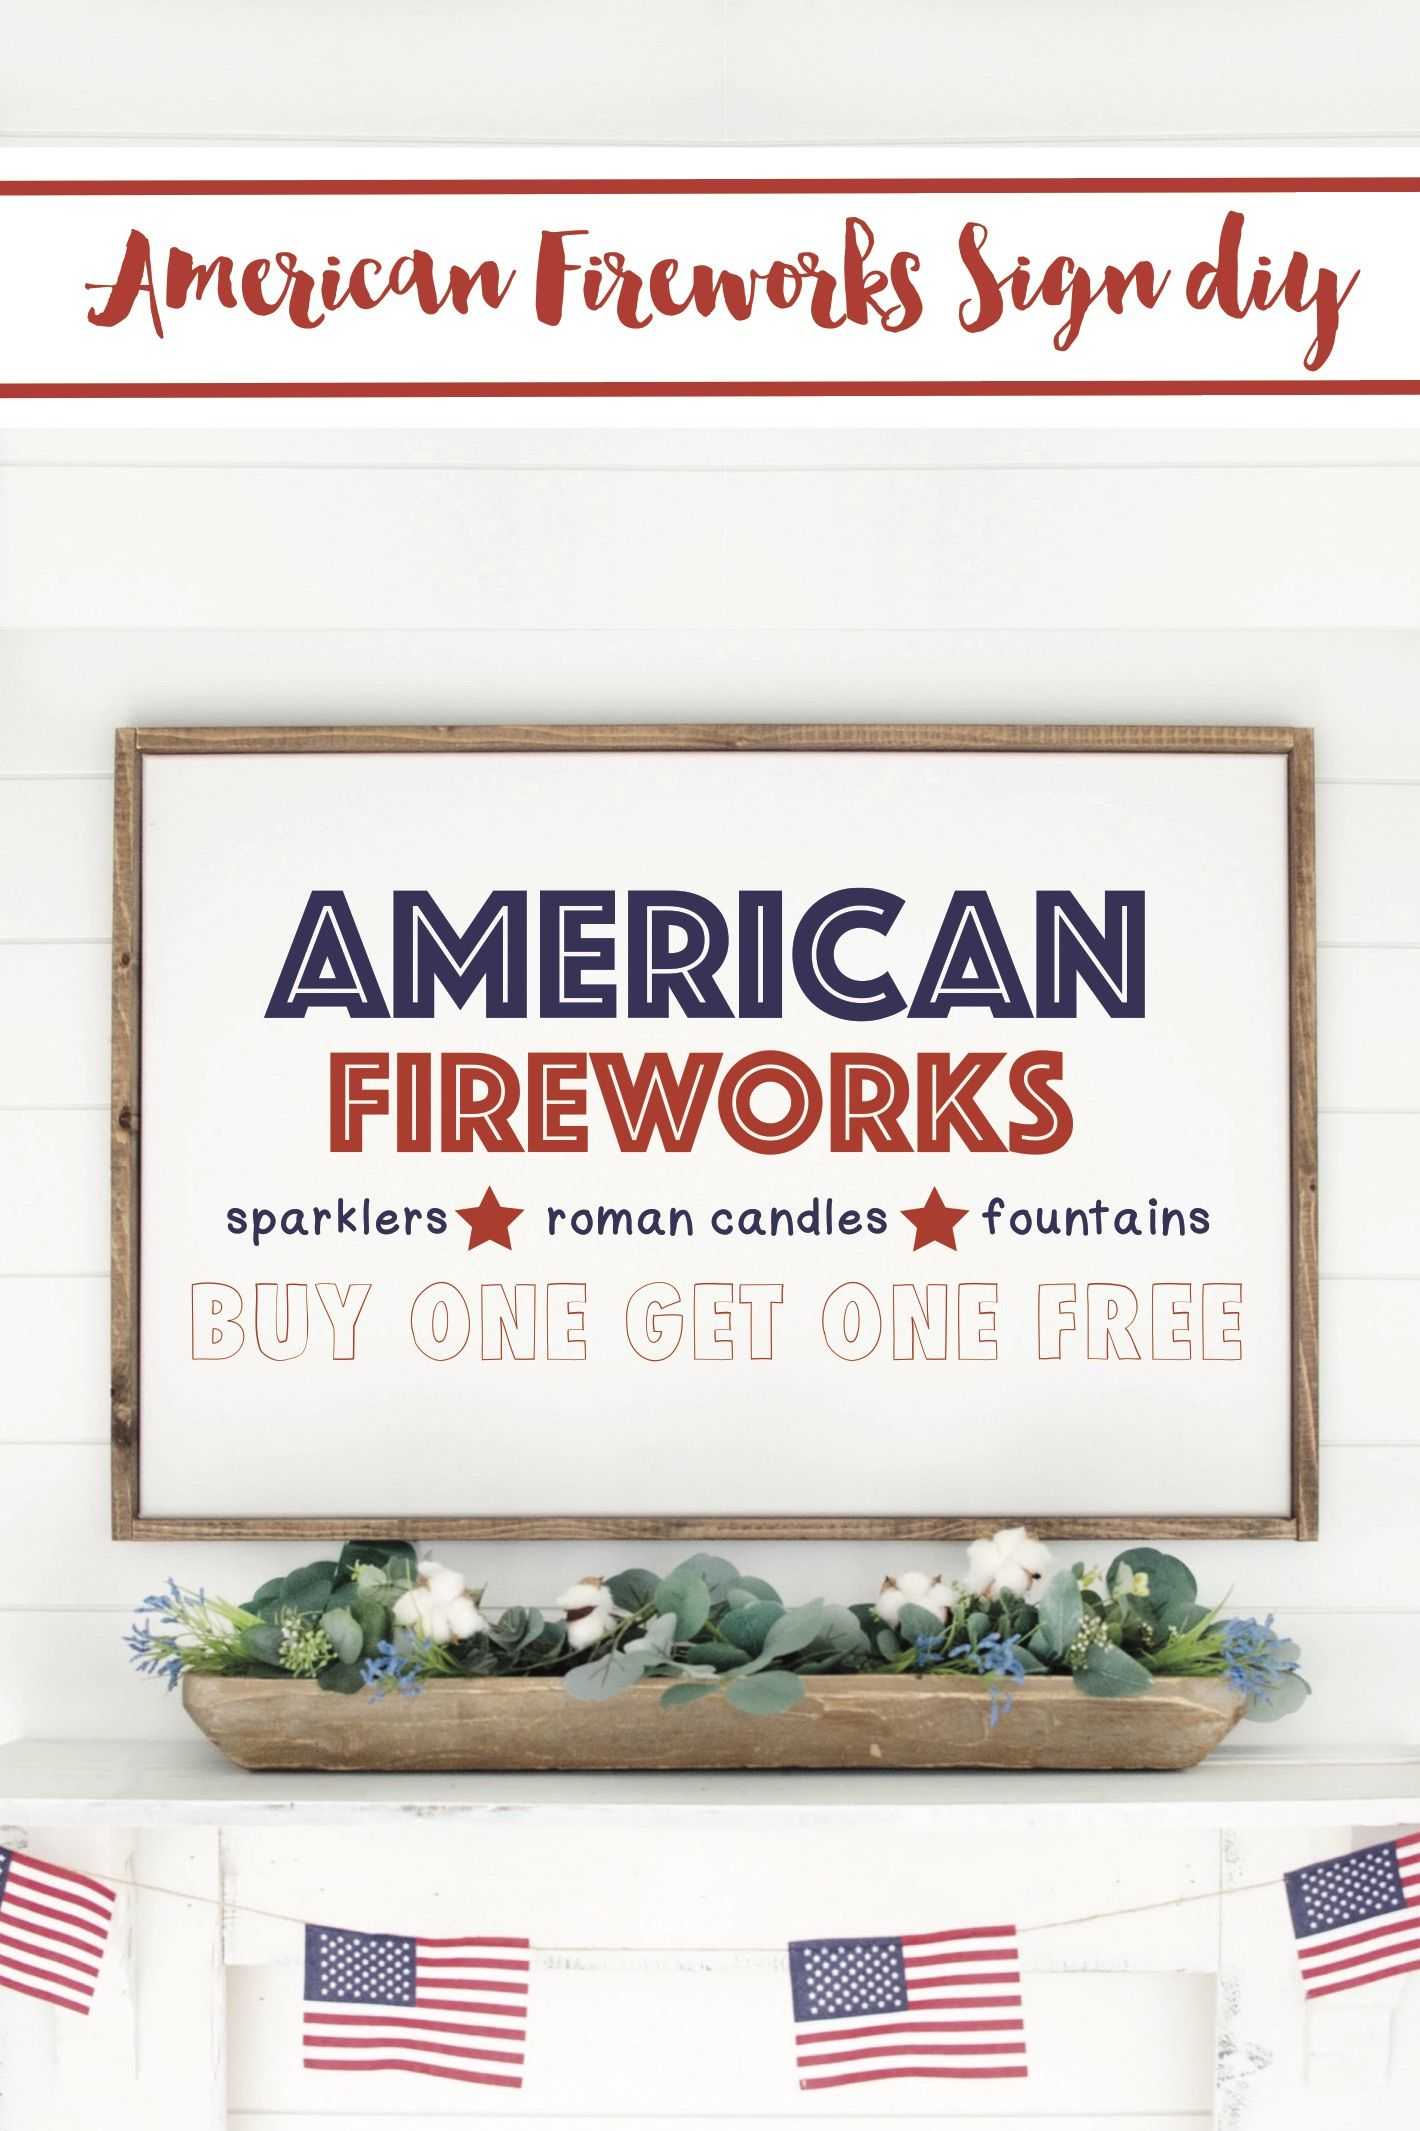 Celebrate the Fourth of July with an adorable DIY Fireworks Stand Sign. #diy #cricut #cricutmade #gigglesgalore #gigglesgalorecreates #4thofjuly #fourthofjuly #diy #crafts #holidaycrafts